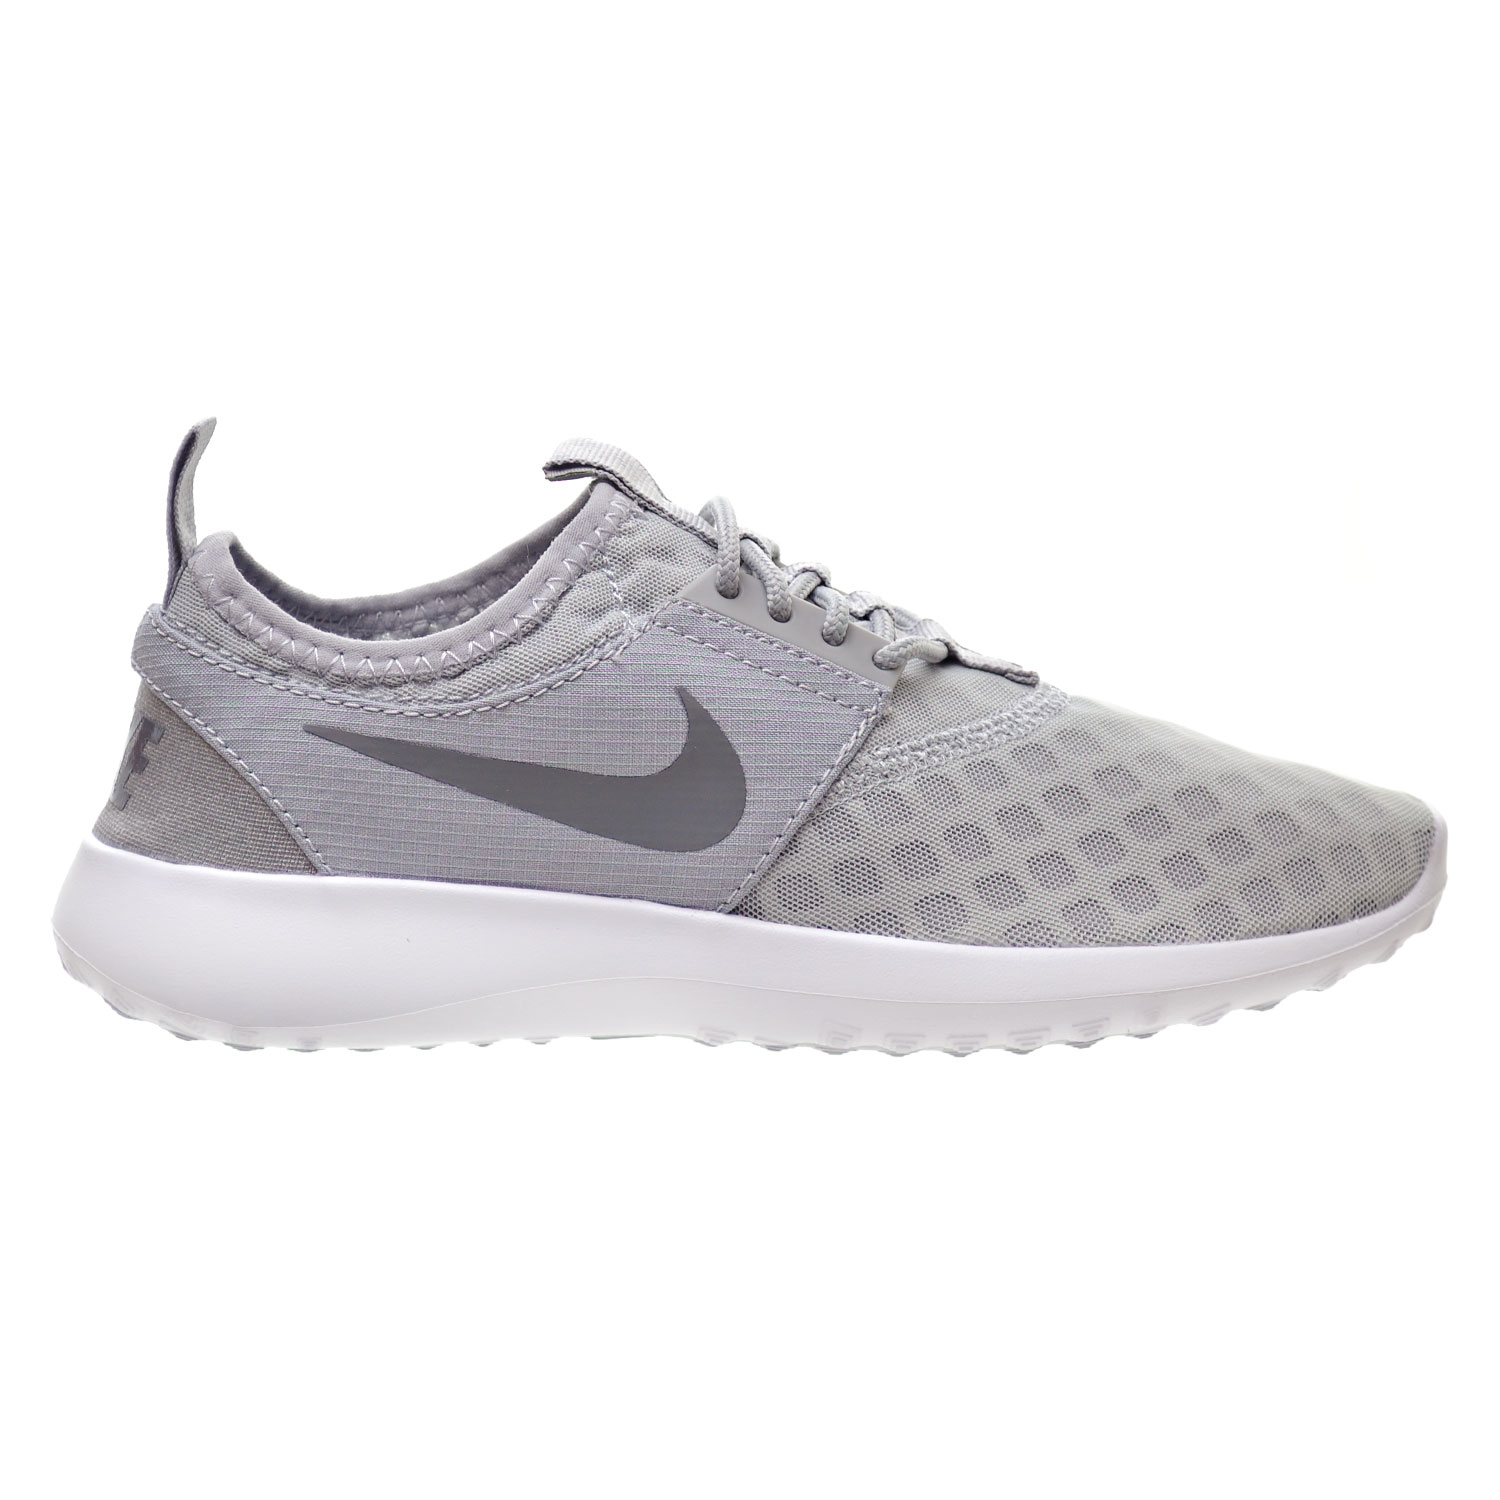 buy online 01291 df257 spain nike juvenate womens shoes wolf grey cool grey white 724979 005  walmart 23365 8185e